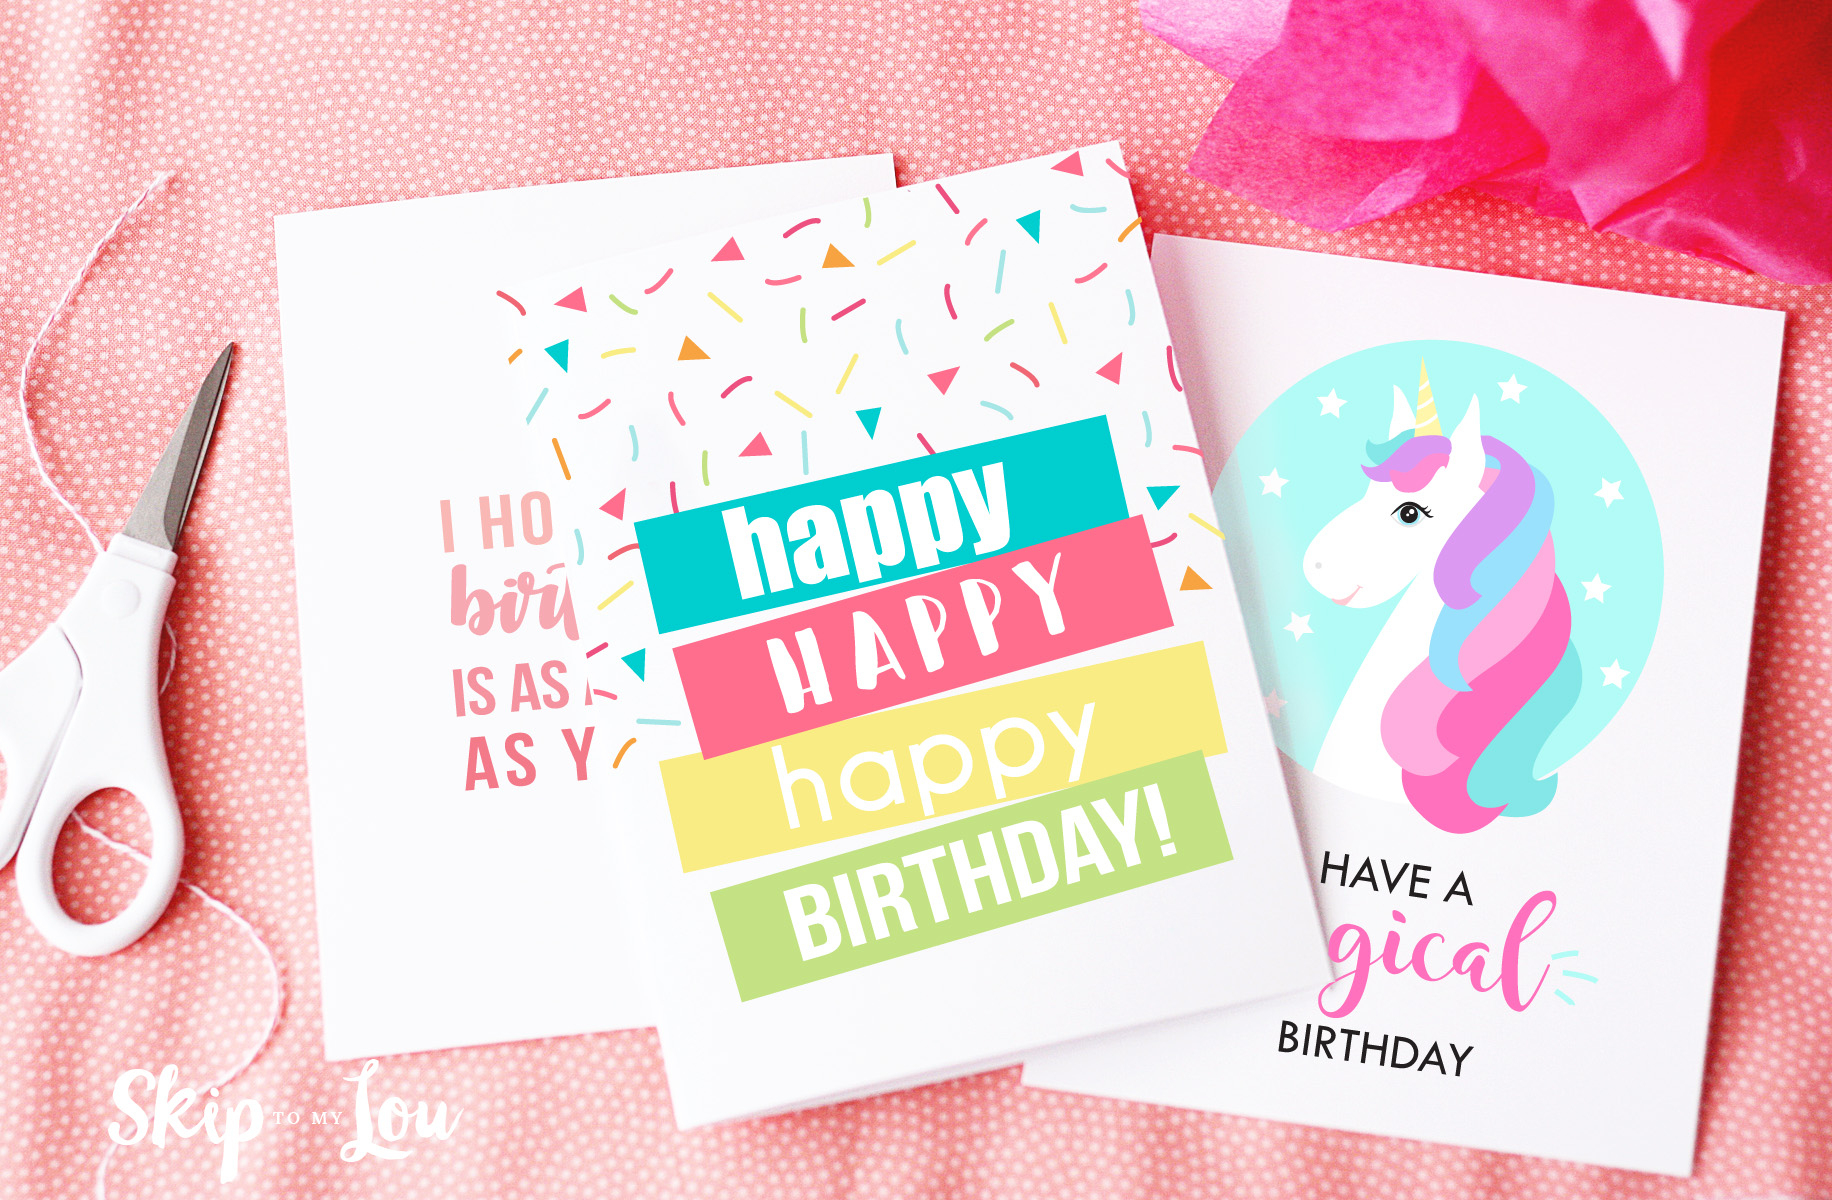 Free Printable Birthday Cards | Skip To My Lou - Free Printable Birthday Cards For Wife